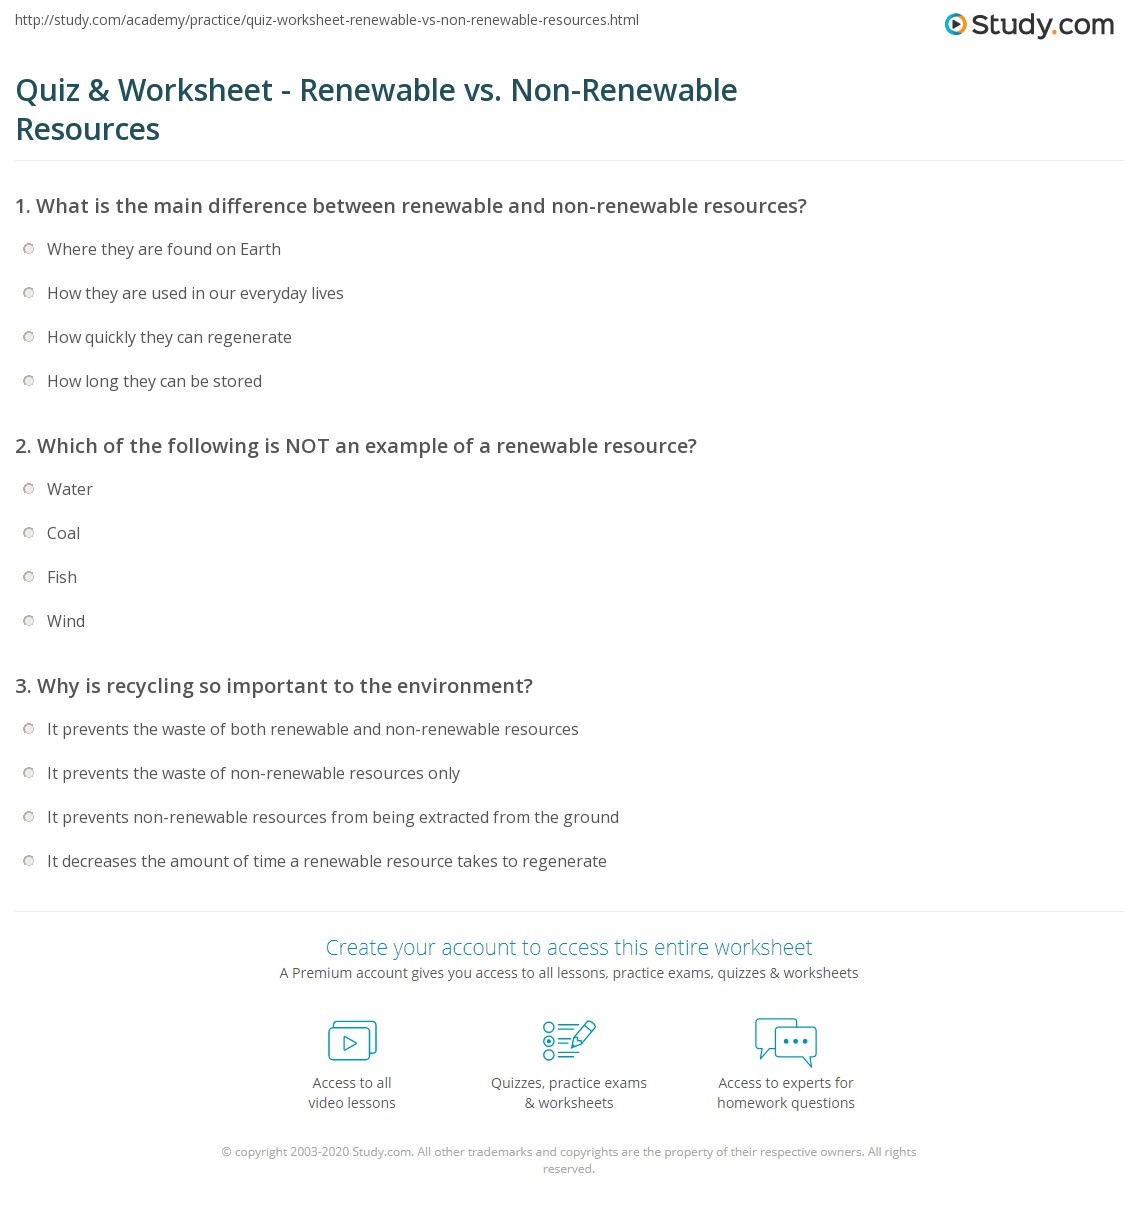 Worksheet Nonrenewable And Renewable Resources Worksheet quiz worksheet renewable vs non resources study com print definition differences worksheet